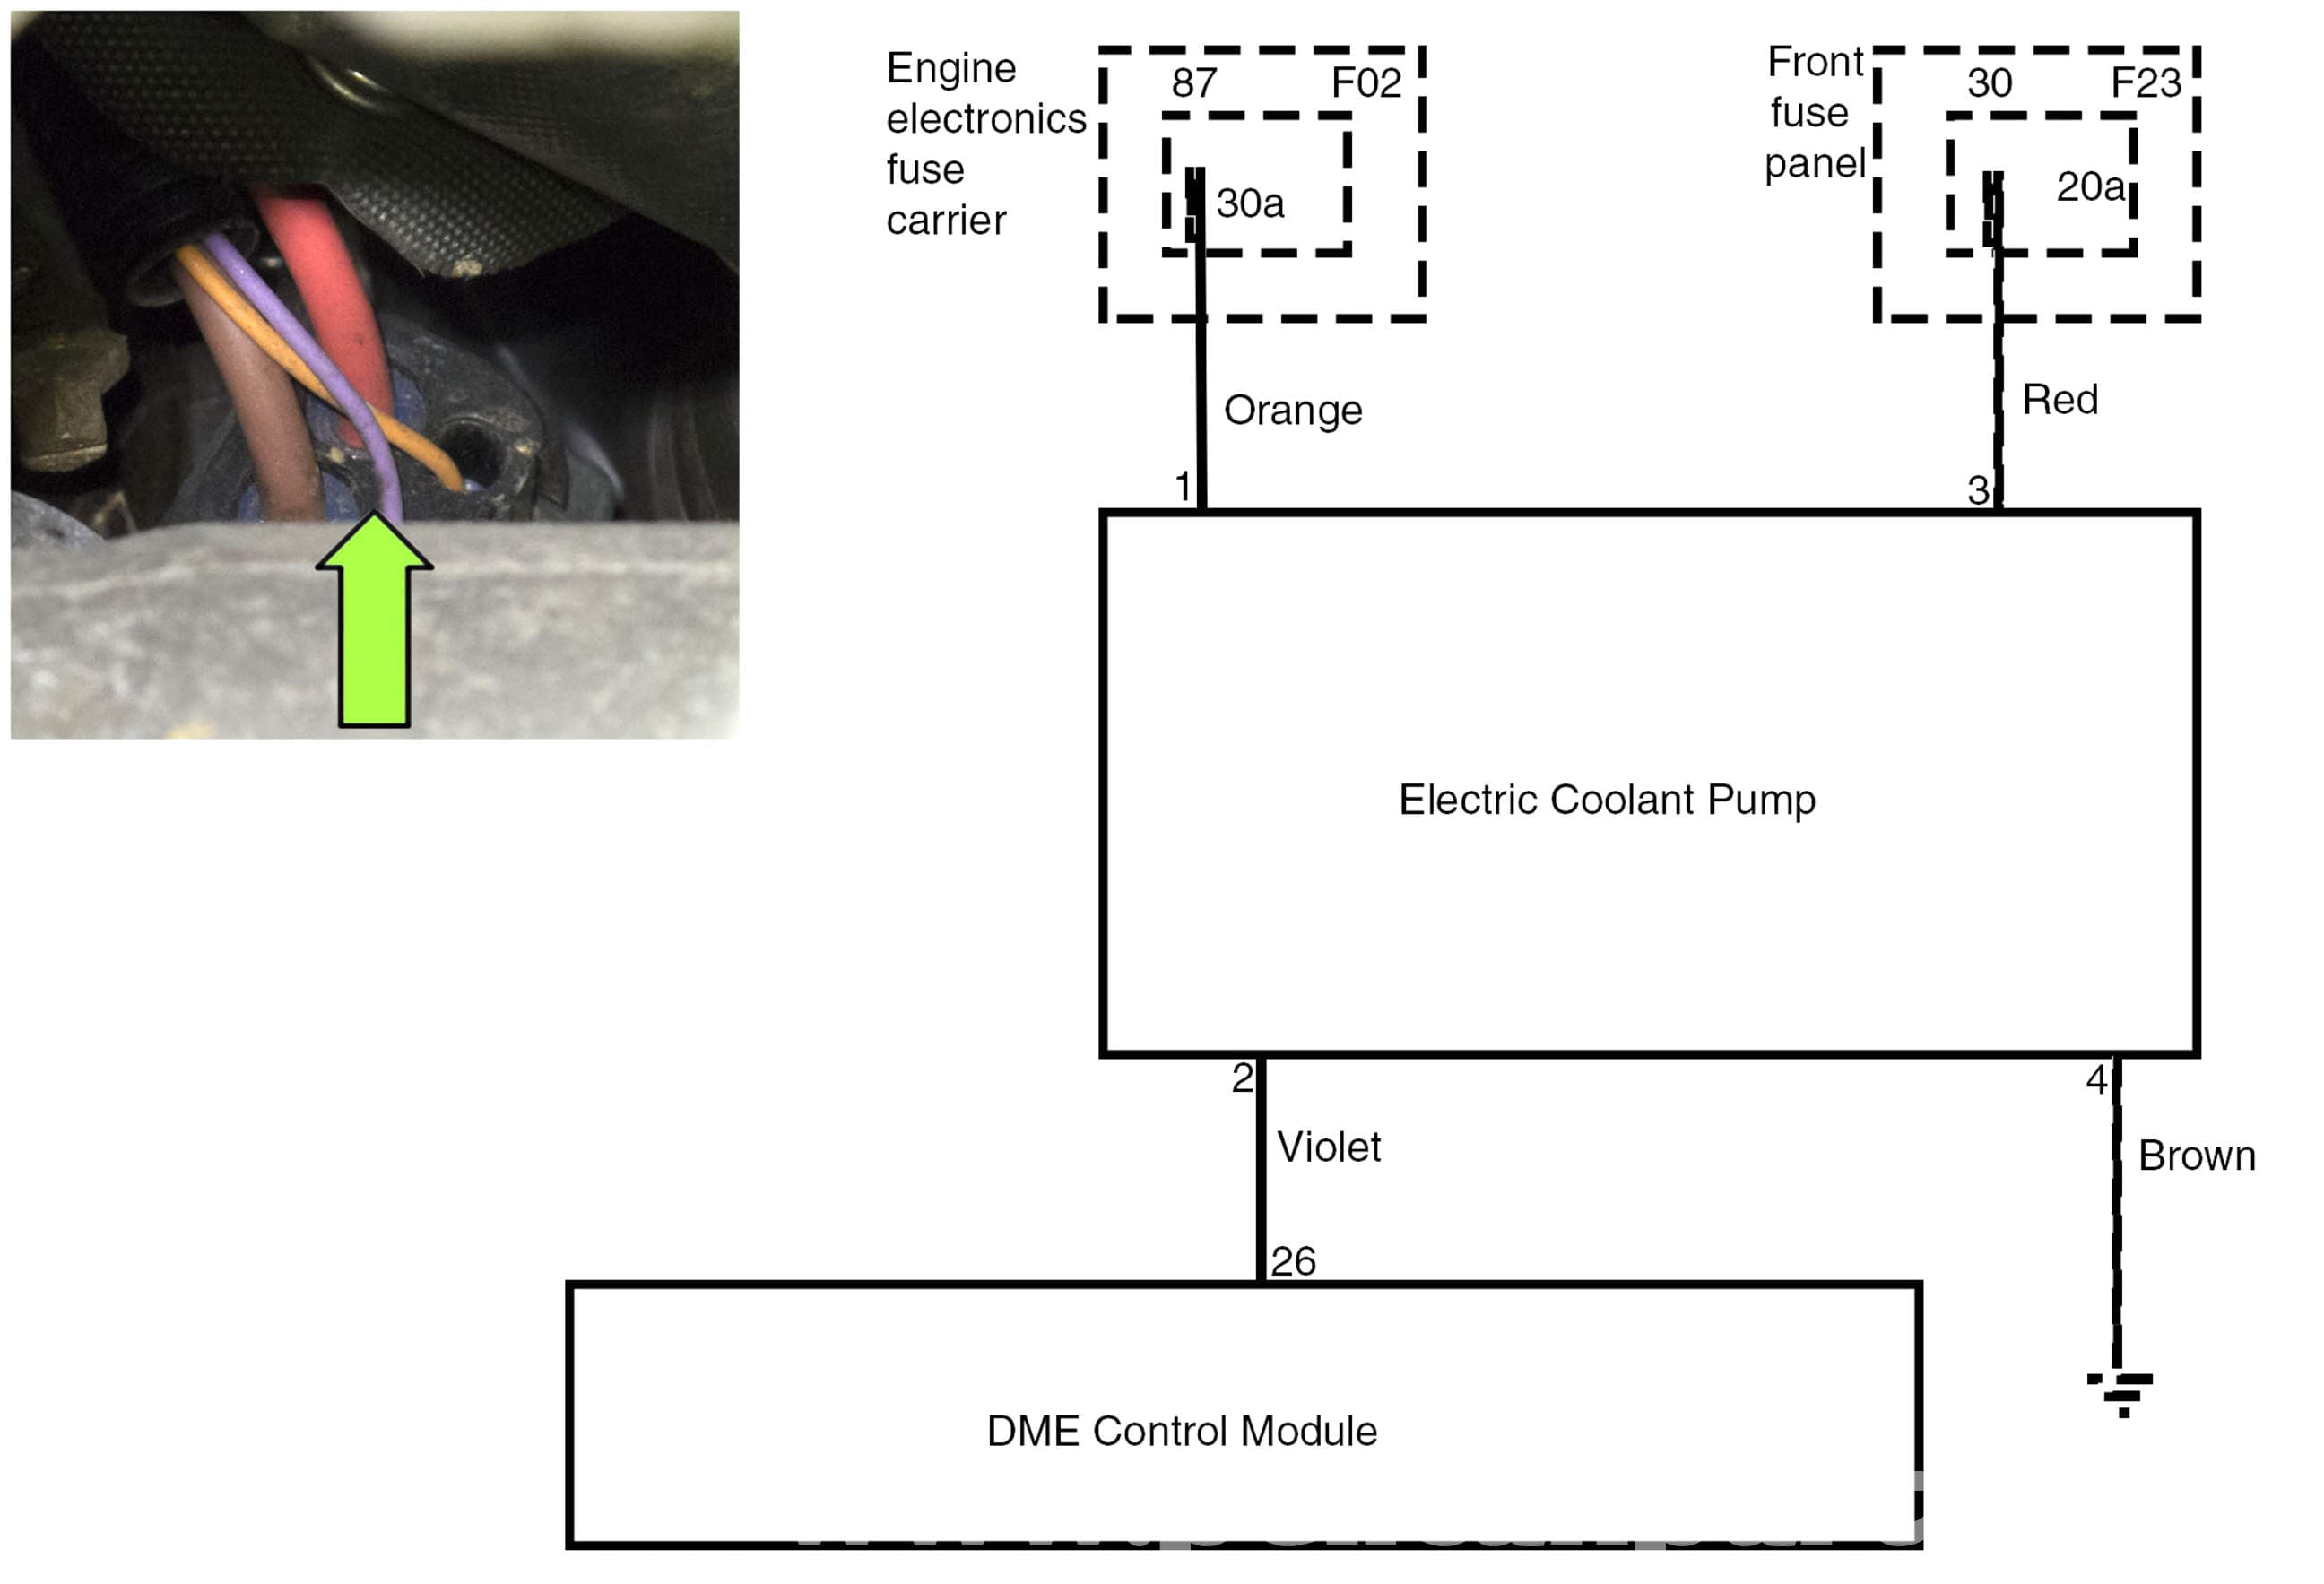 Mins Ecm Wiring Diagram Bmw E60 5 Series Water Pump Testing Pelican Parts Technical Article Large Image Extra